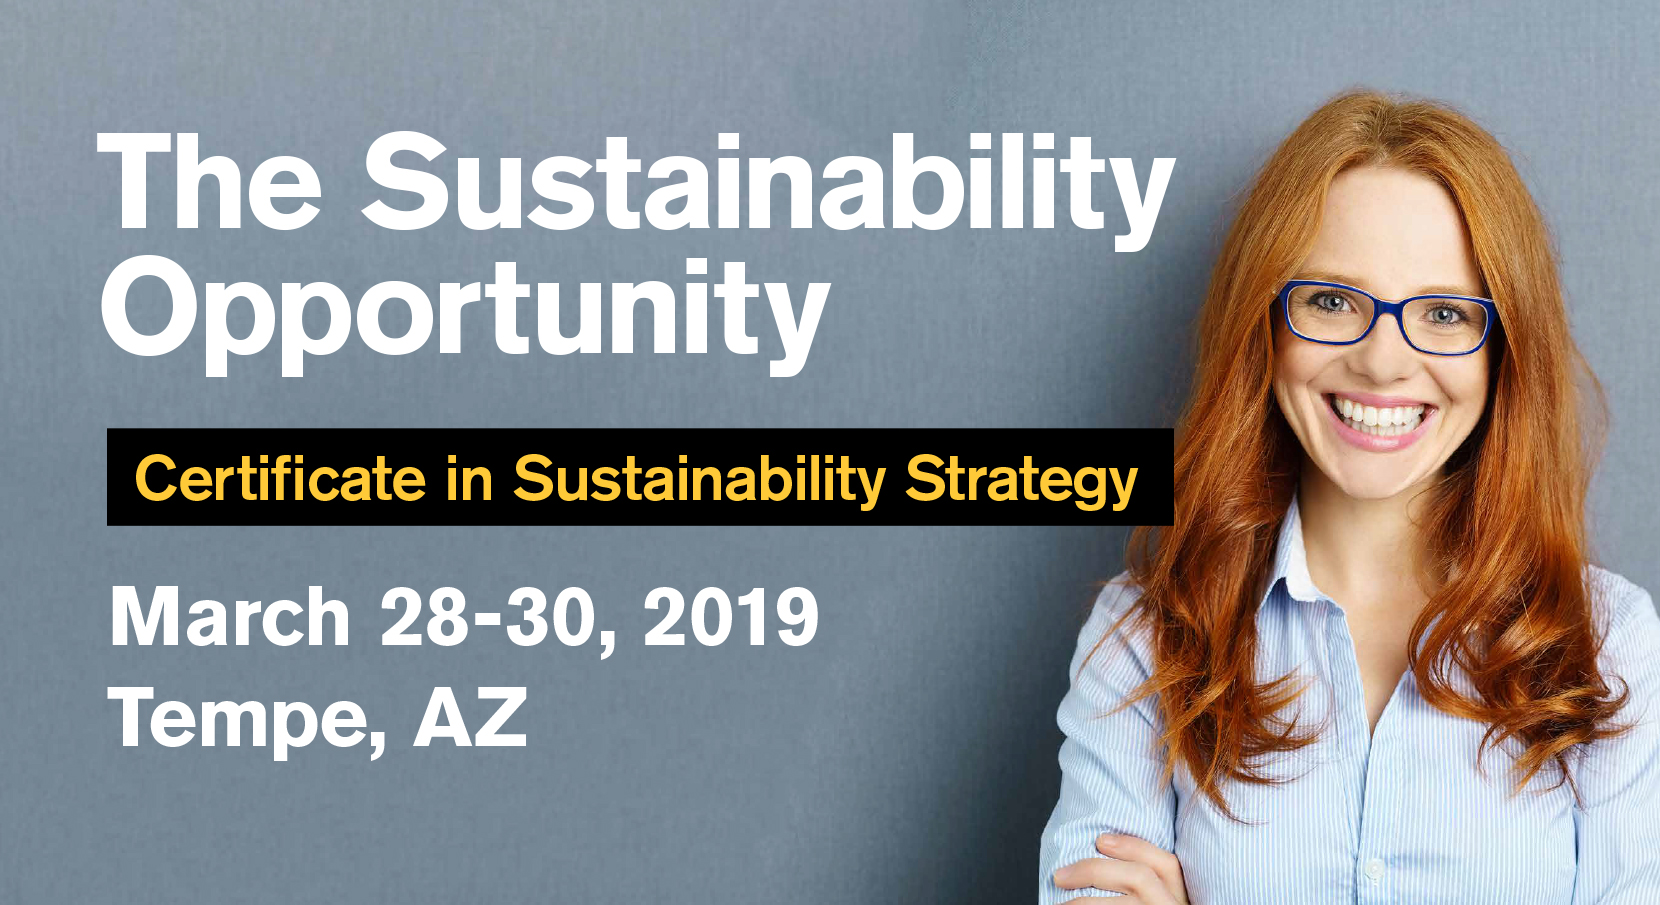 The Sustainability Opportunity